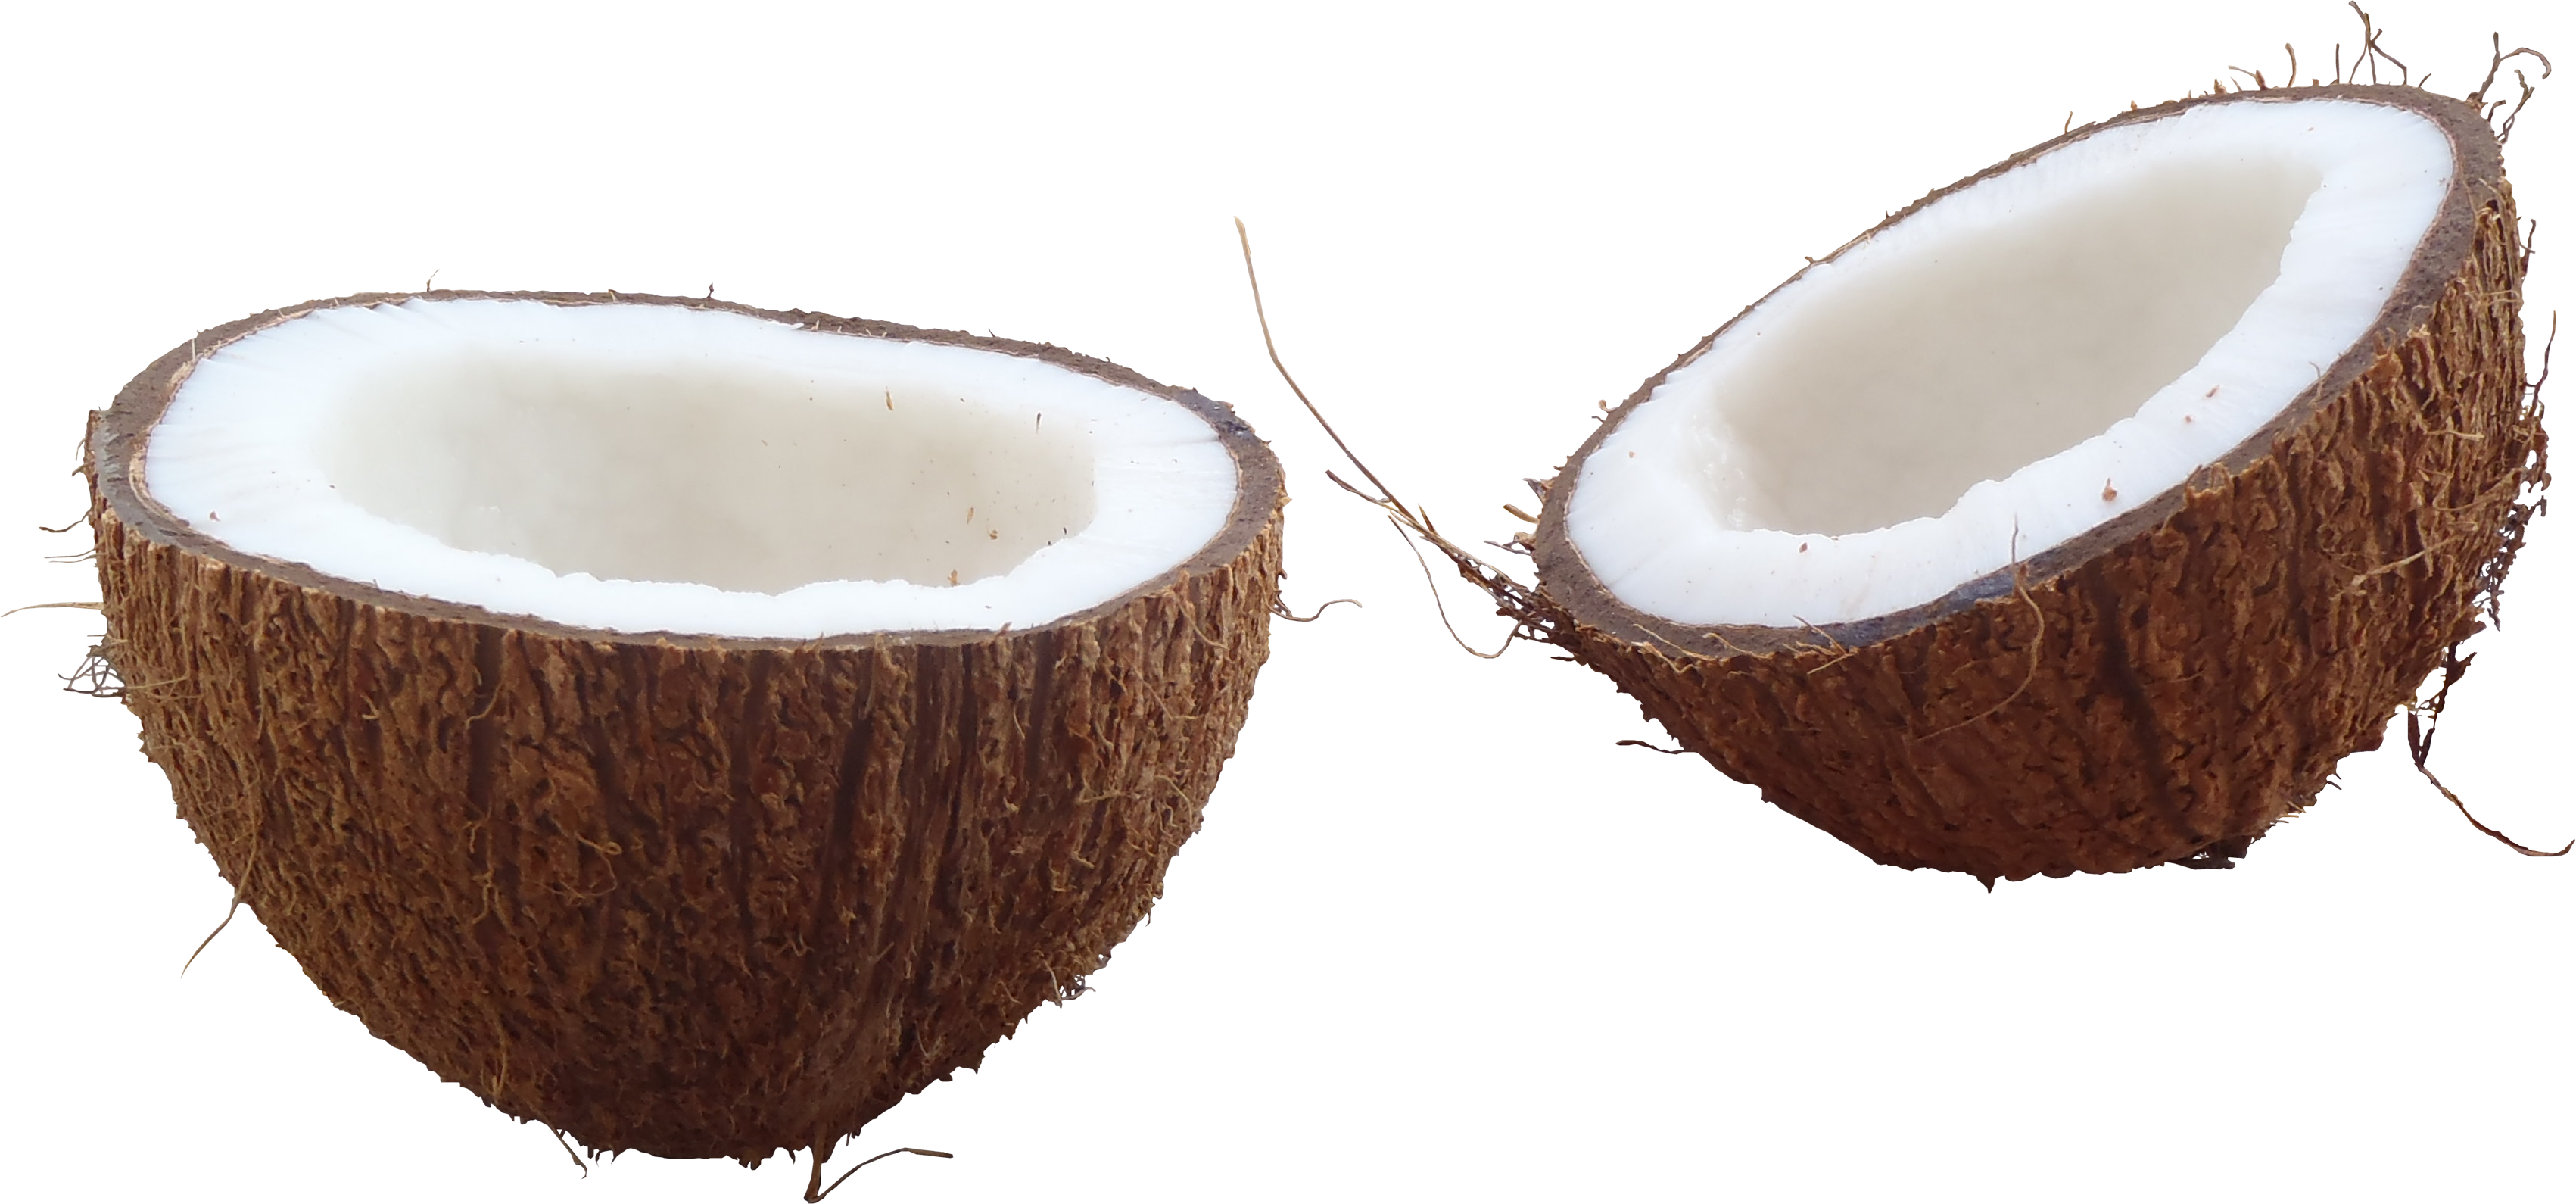 download coconut image pngimg #8776